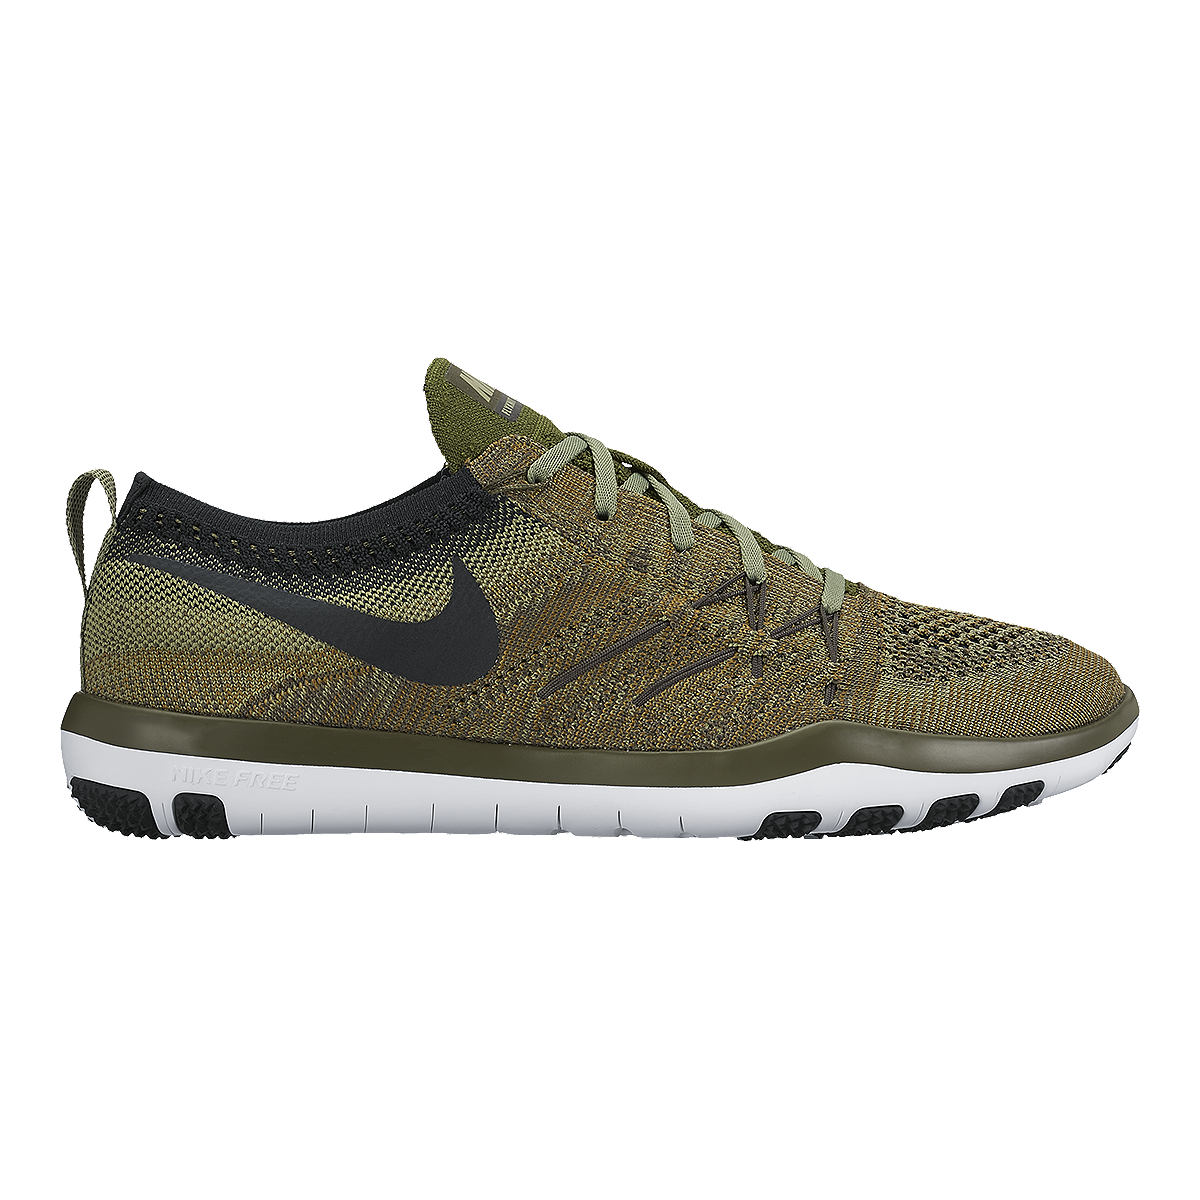 sports shoes 18002 419a6 Nike Women s Free TR Focus FlyKnit Training Shoes - Olive Green Black    Sport Chek